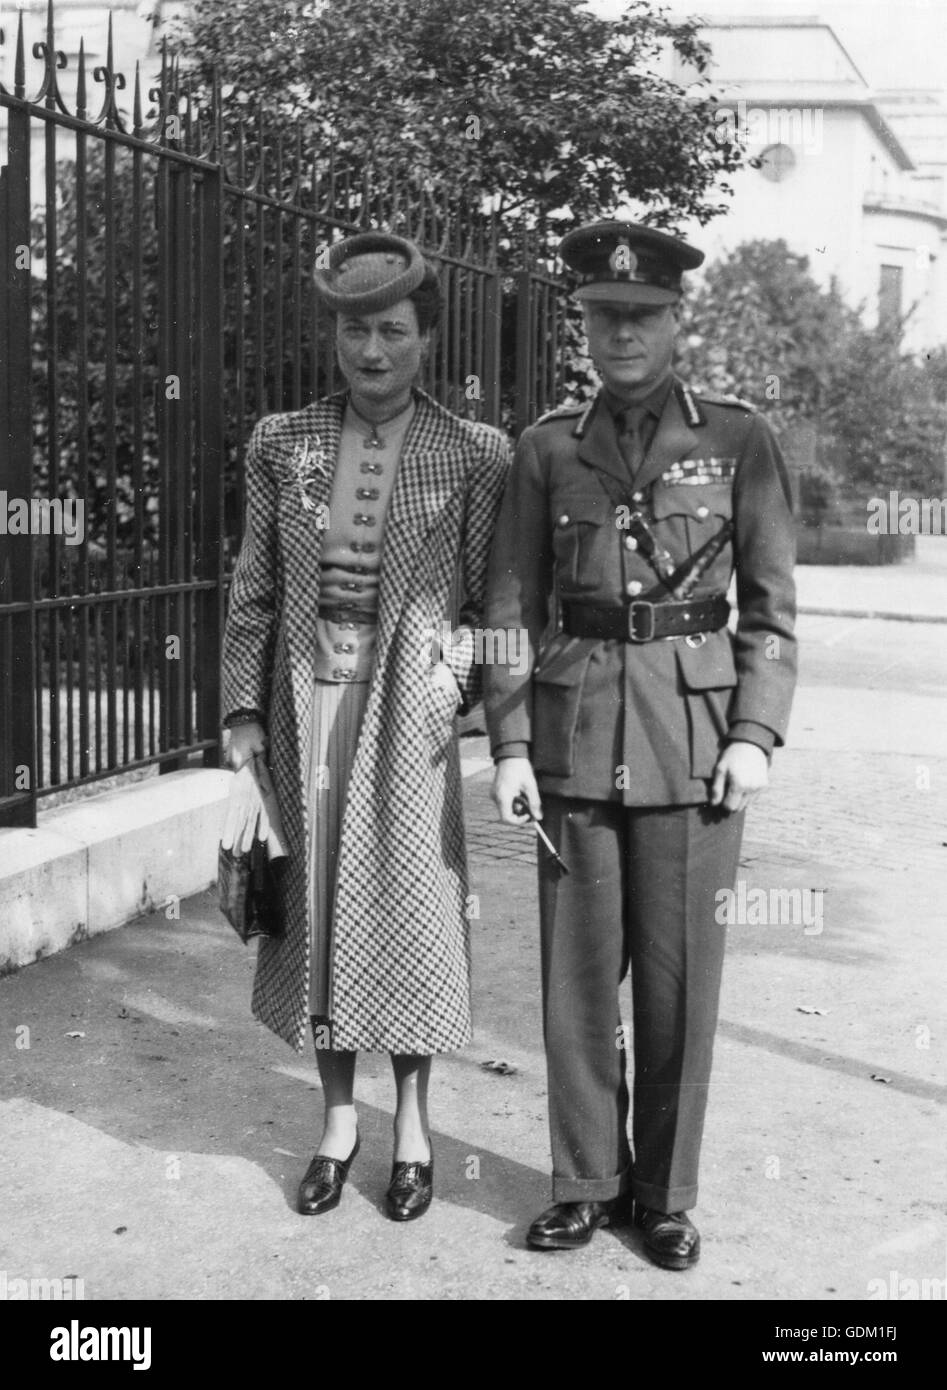 The Duke and Duchess of Windsor photographed outside their Paris home on the Boulevard Suchet. - Stock Image